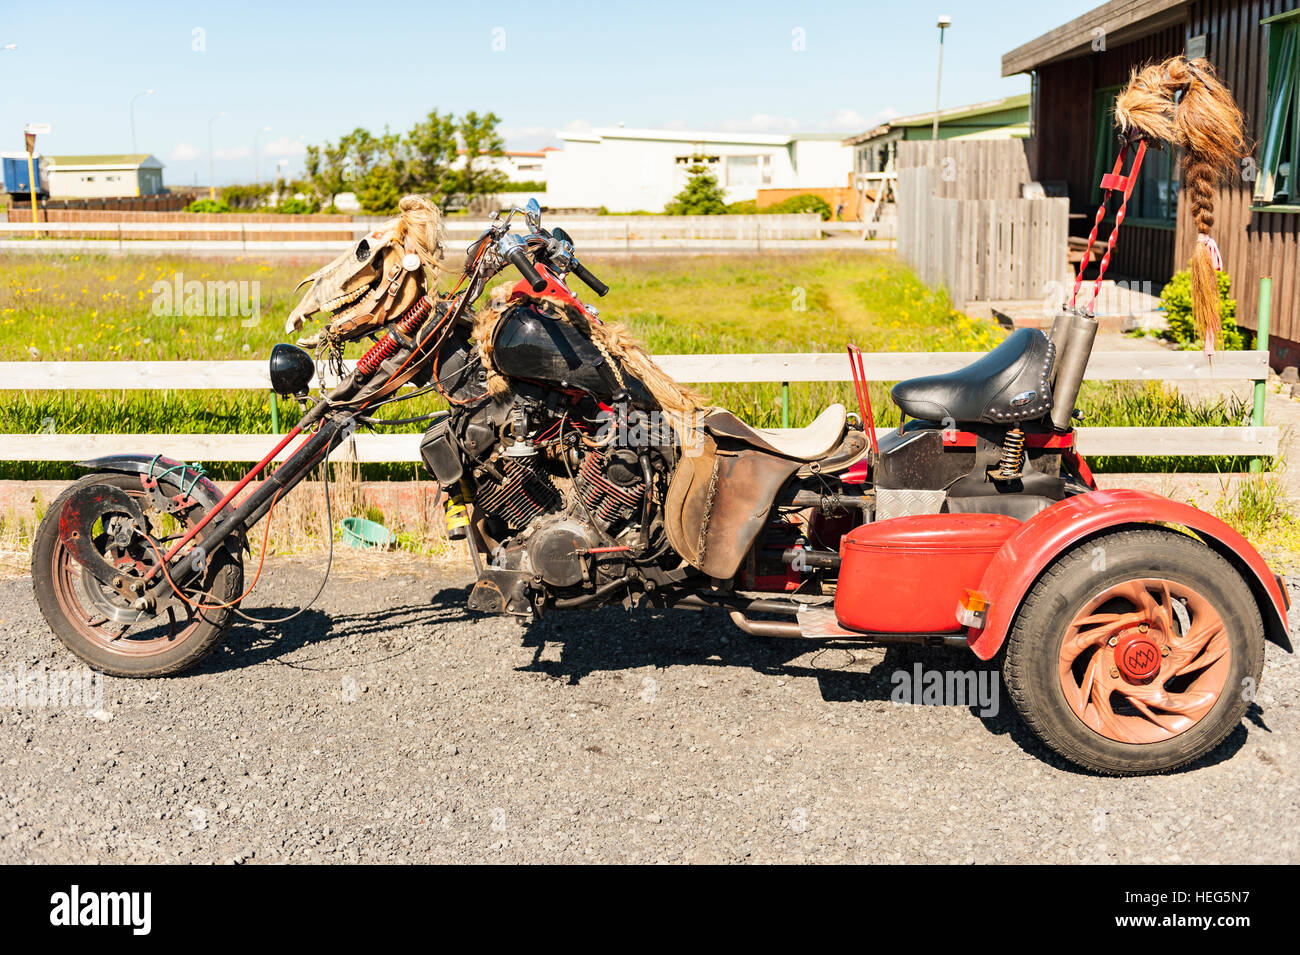 A custom-made three-wheeled motorcycle / chopper adorned with a horse skull and wigs. - Stock Image